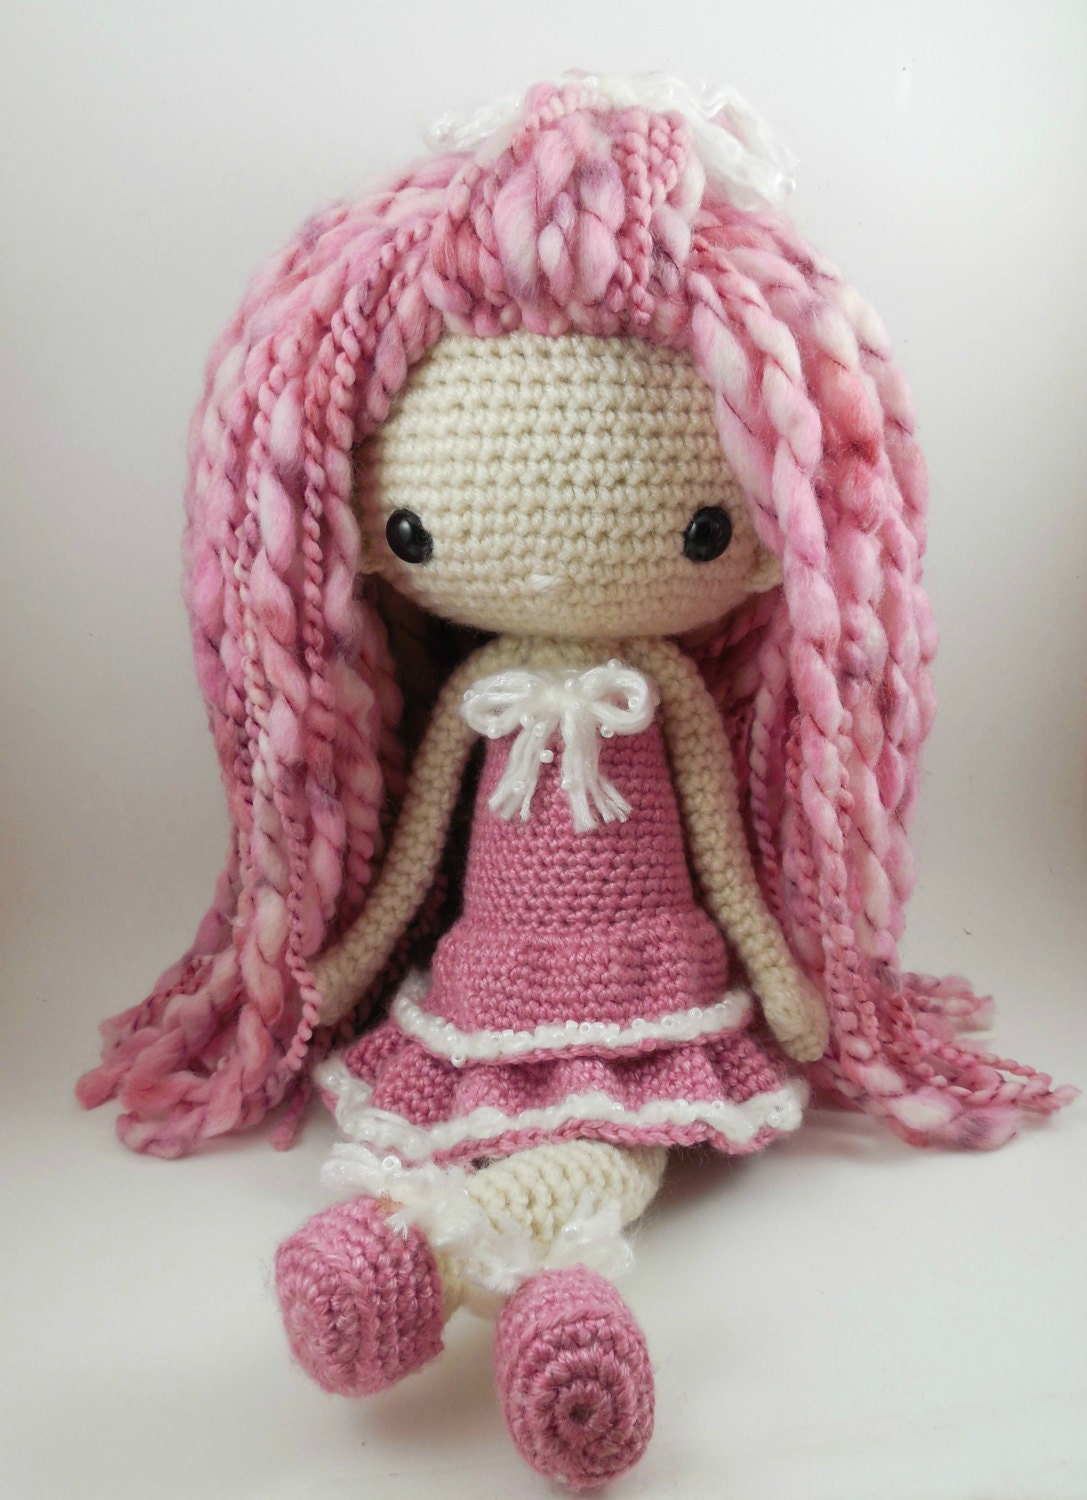 Amigurumi Square Doll : Lupita Amigurumi Doll Crochet Pattern PDF by CarmenRent on ...